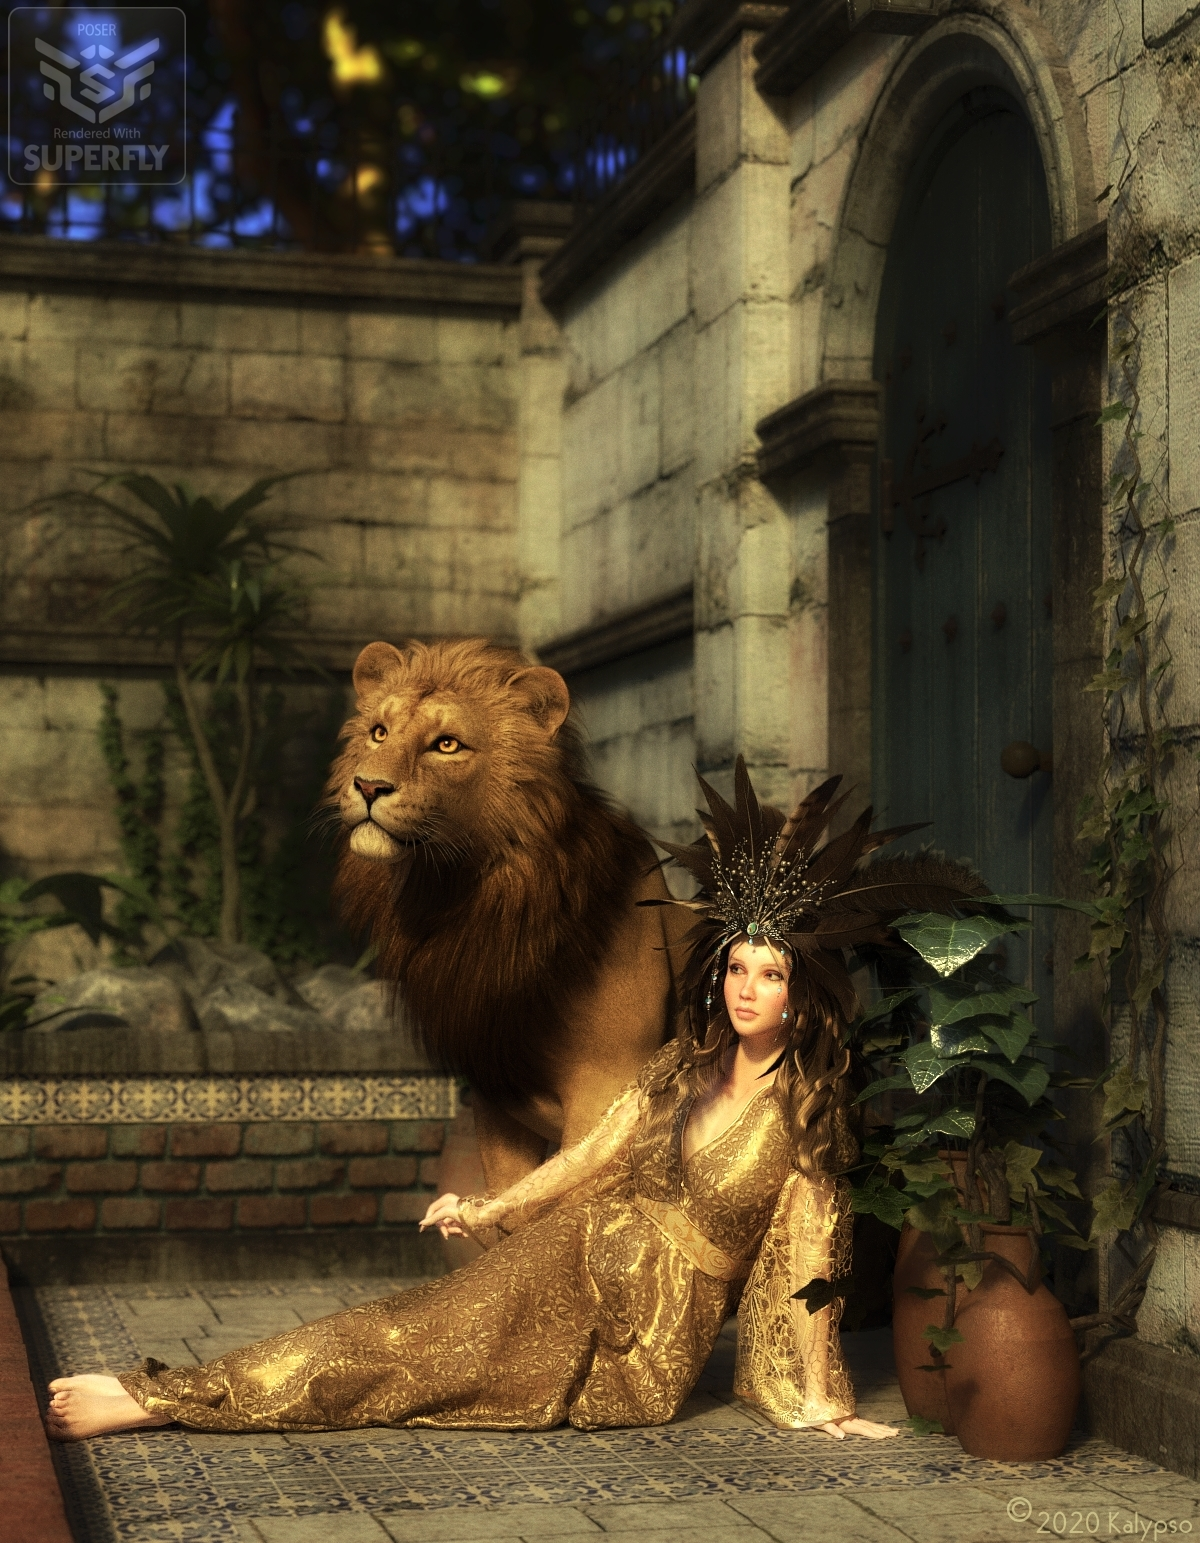 The Lady and the Lion by Kalypso